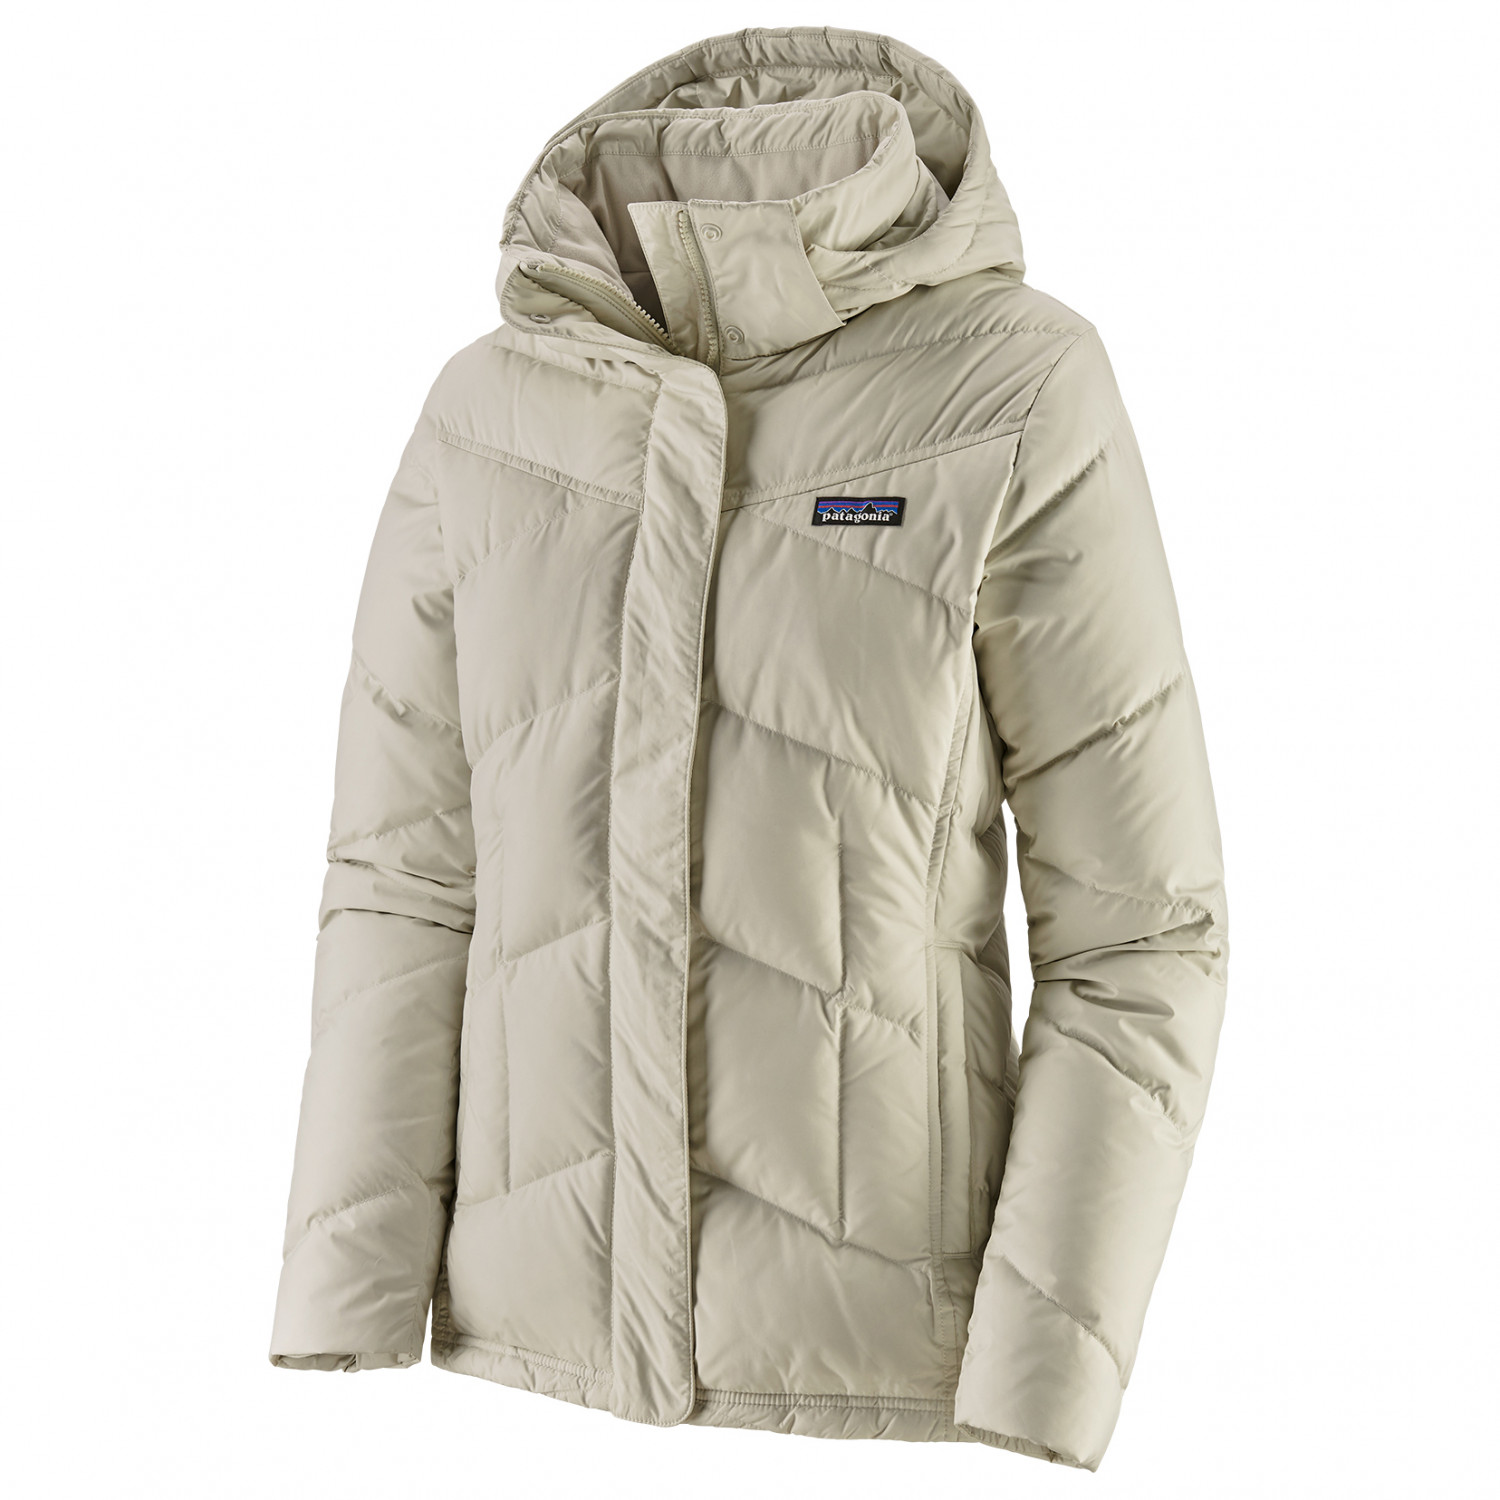 Doudoune Jacket WhiteS Women's With Dyno Down Patagonia It wZuPkXiTO